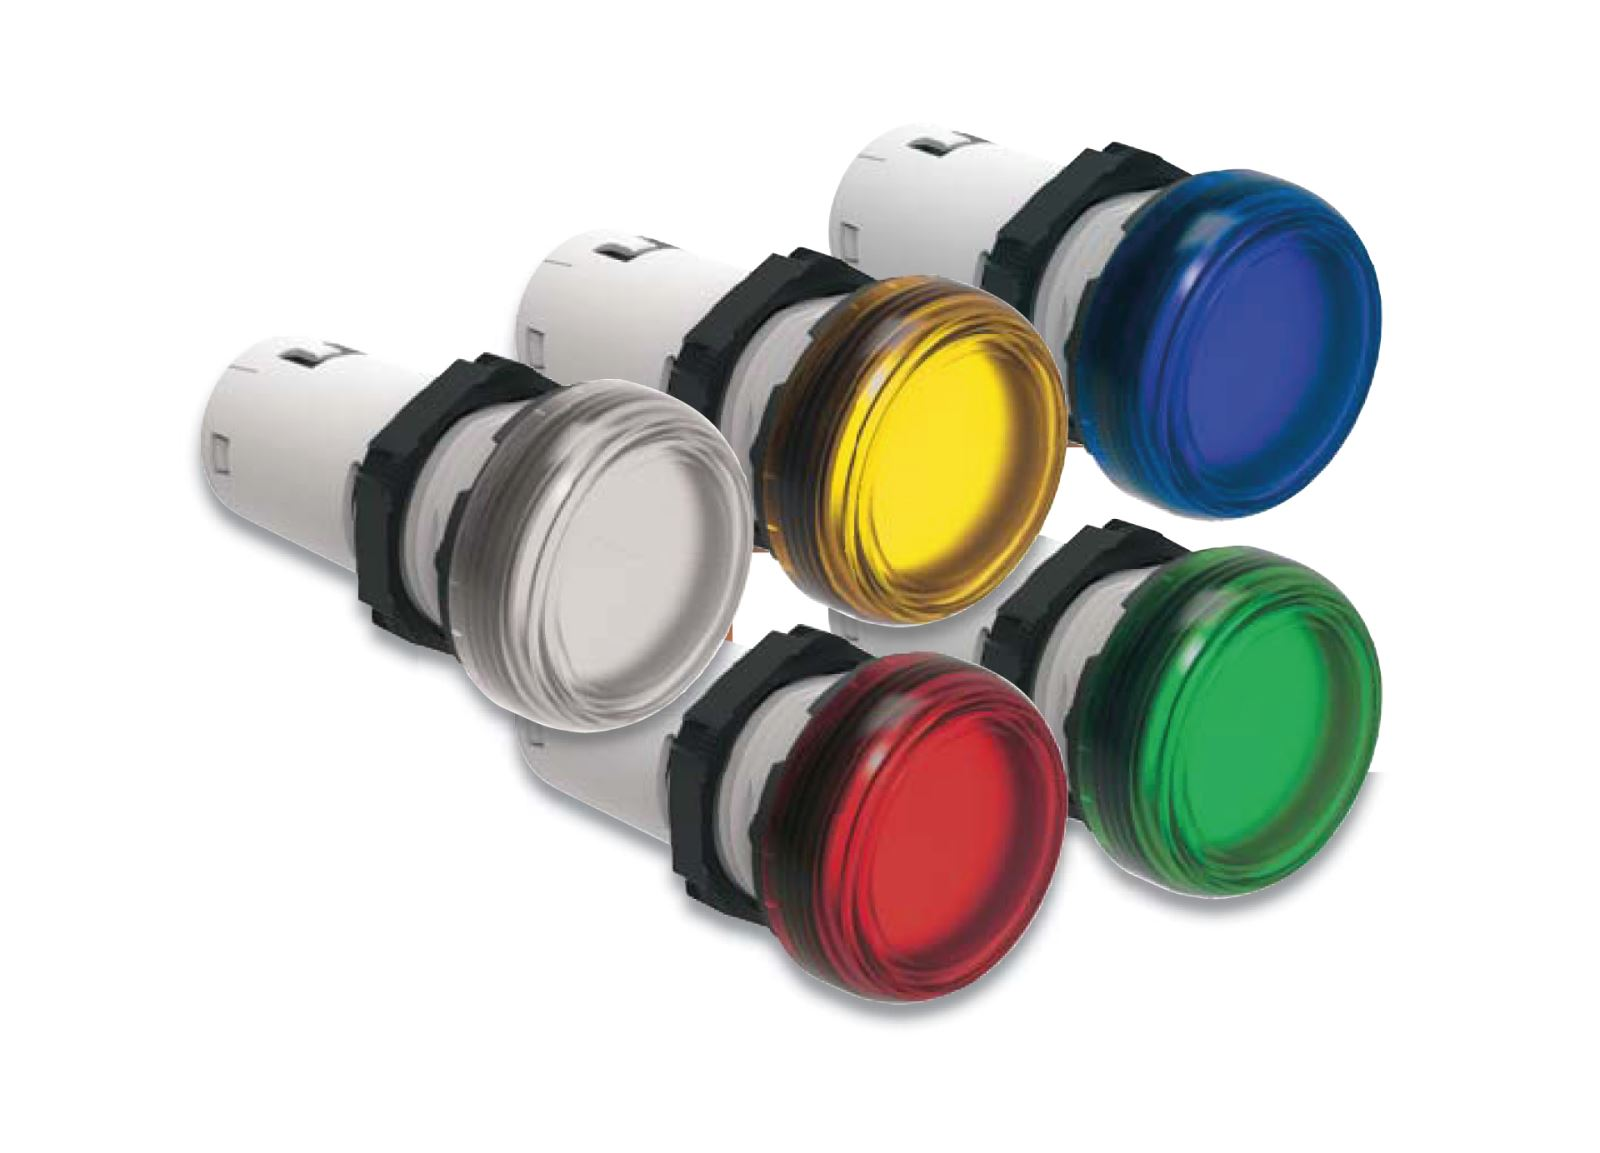 Monoblock pilot lights